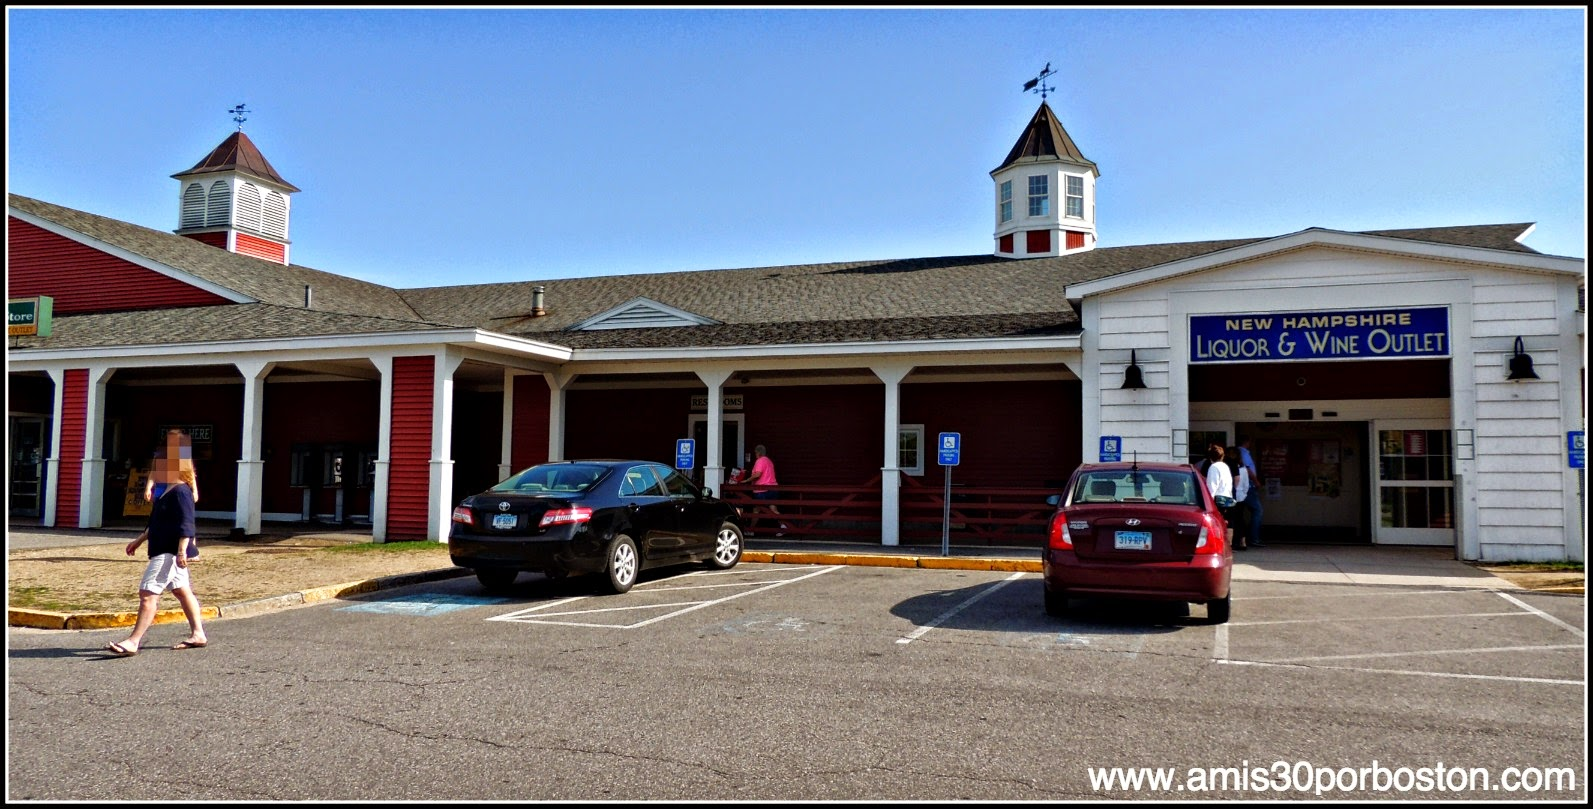 Liquor & Wine Outlets de New Hampshire